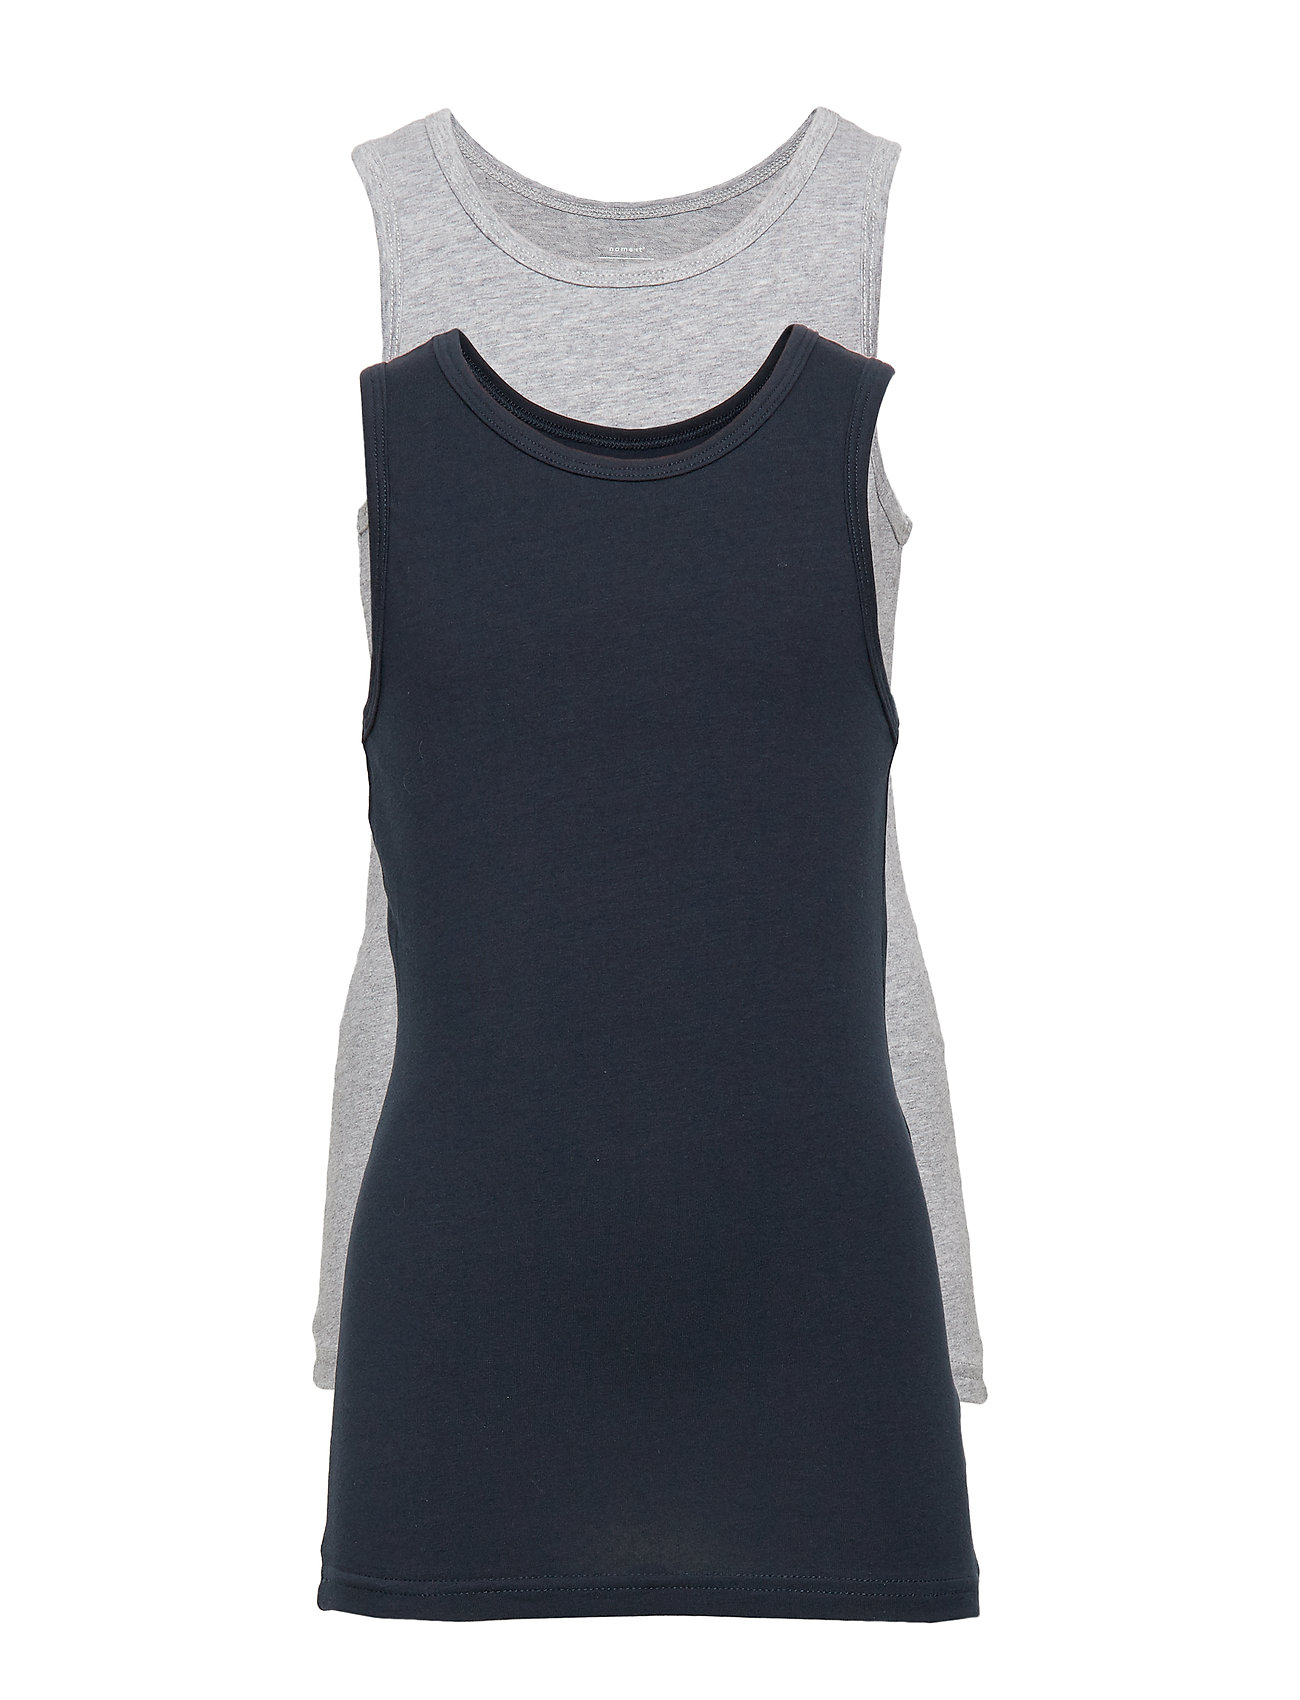 name it NKMTANK TOP 2P GREY MELANGE NOOS - GREY MELANGE